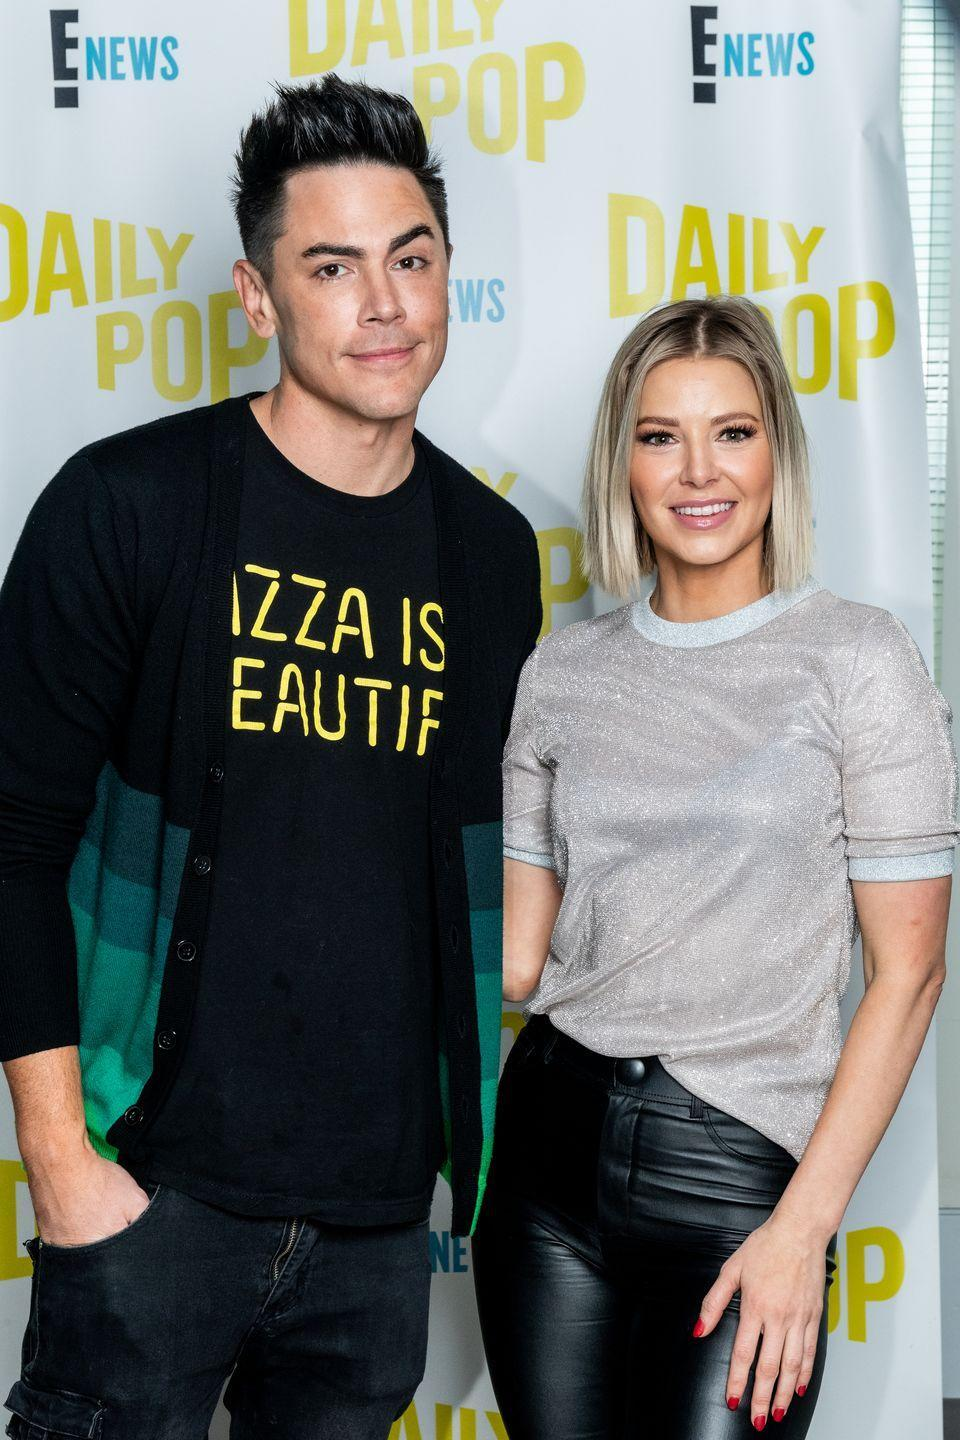 """<p>Workplace romances aren't exactly frowned upon at SUR<em>—</em>in fact, it's the norm on <em><em>Vanderpump Rules</em></em>. So when Ariana Madix joined the restaurant staff in season 2, it was only natural that the two bartenders would strike up a romance. The couple have been <a href=""""https://www.bravotv.com/the-daily-dish/tom-sandoval-ariana-madix-together-5-years-anniversary"""" rel=""""nofollow noopener"""" target=""""_blank"""" data-ylk=""""slk:going strong for almost six years"""" class=""""link rapid-noclick-resp"""">going strong for almost six years</a>—and many seasons of dramatic reality TV. </p>"""